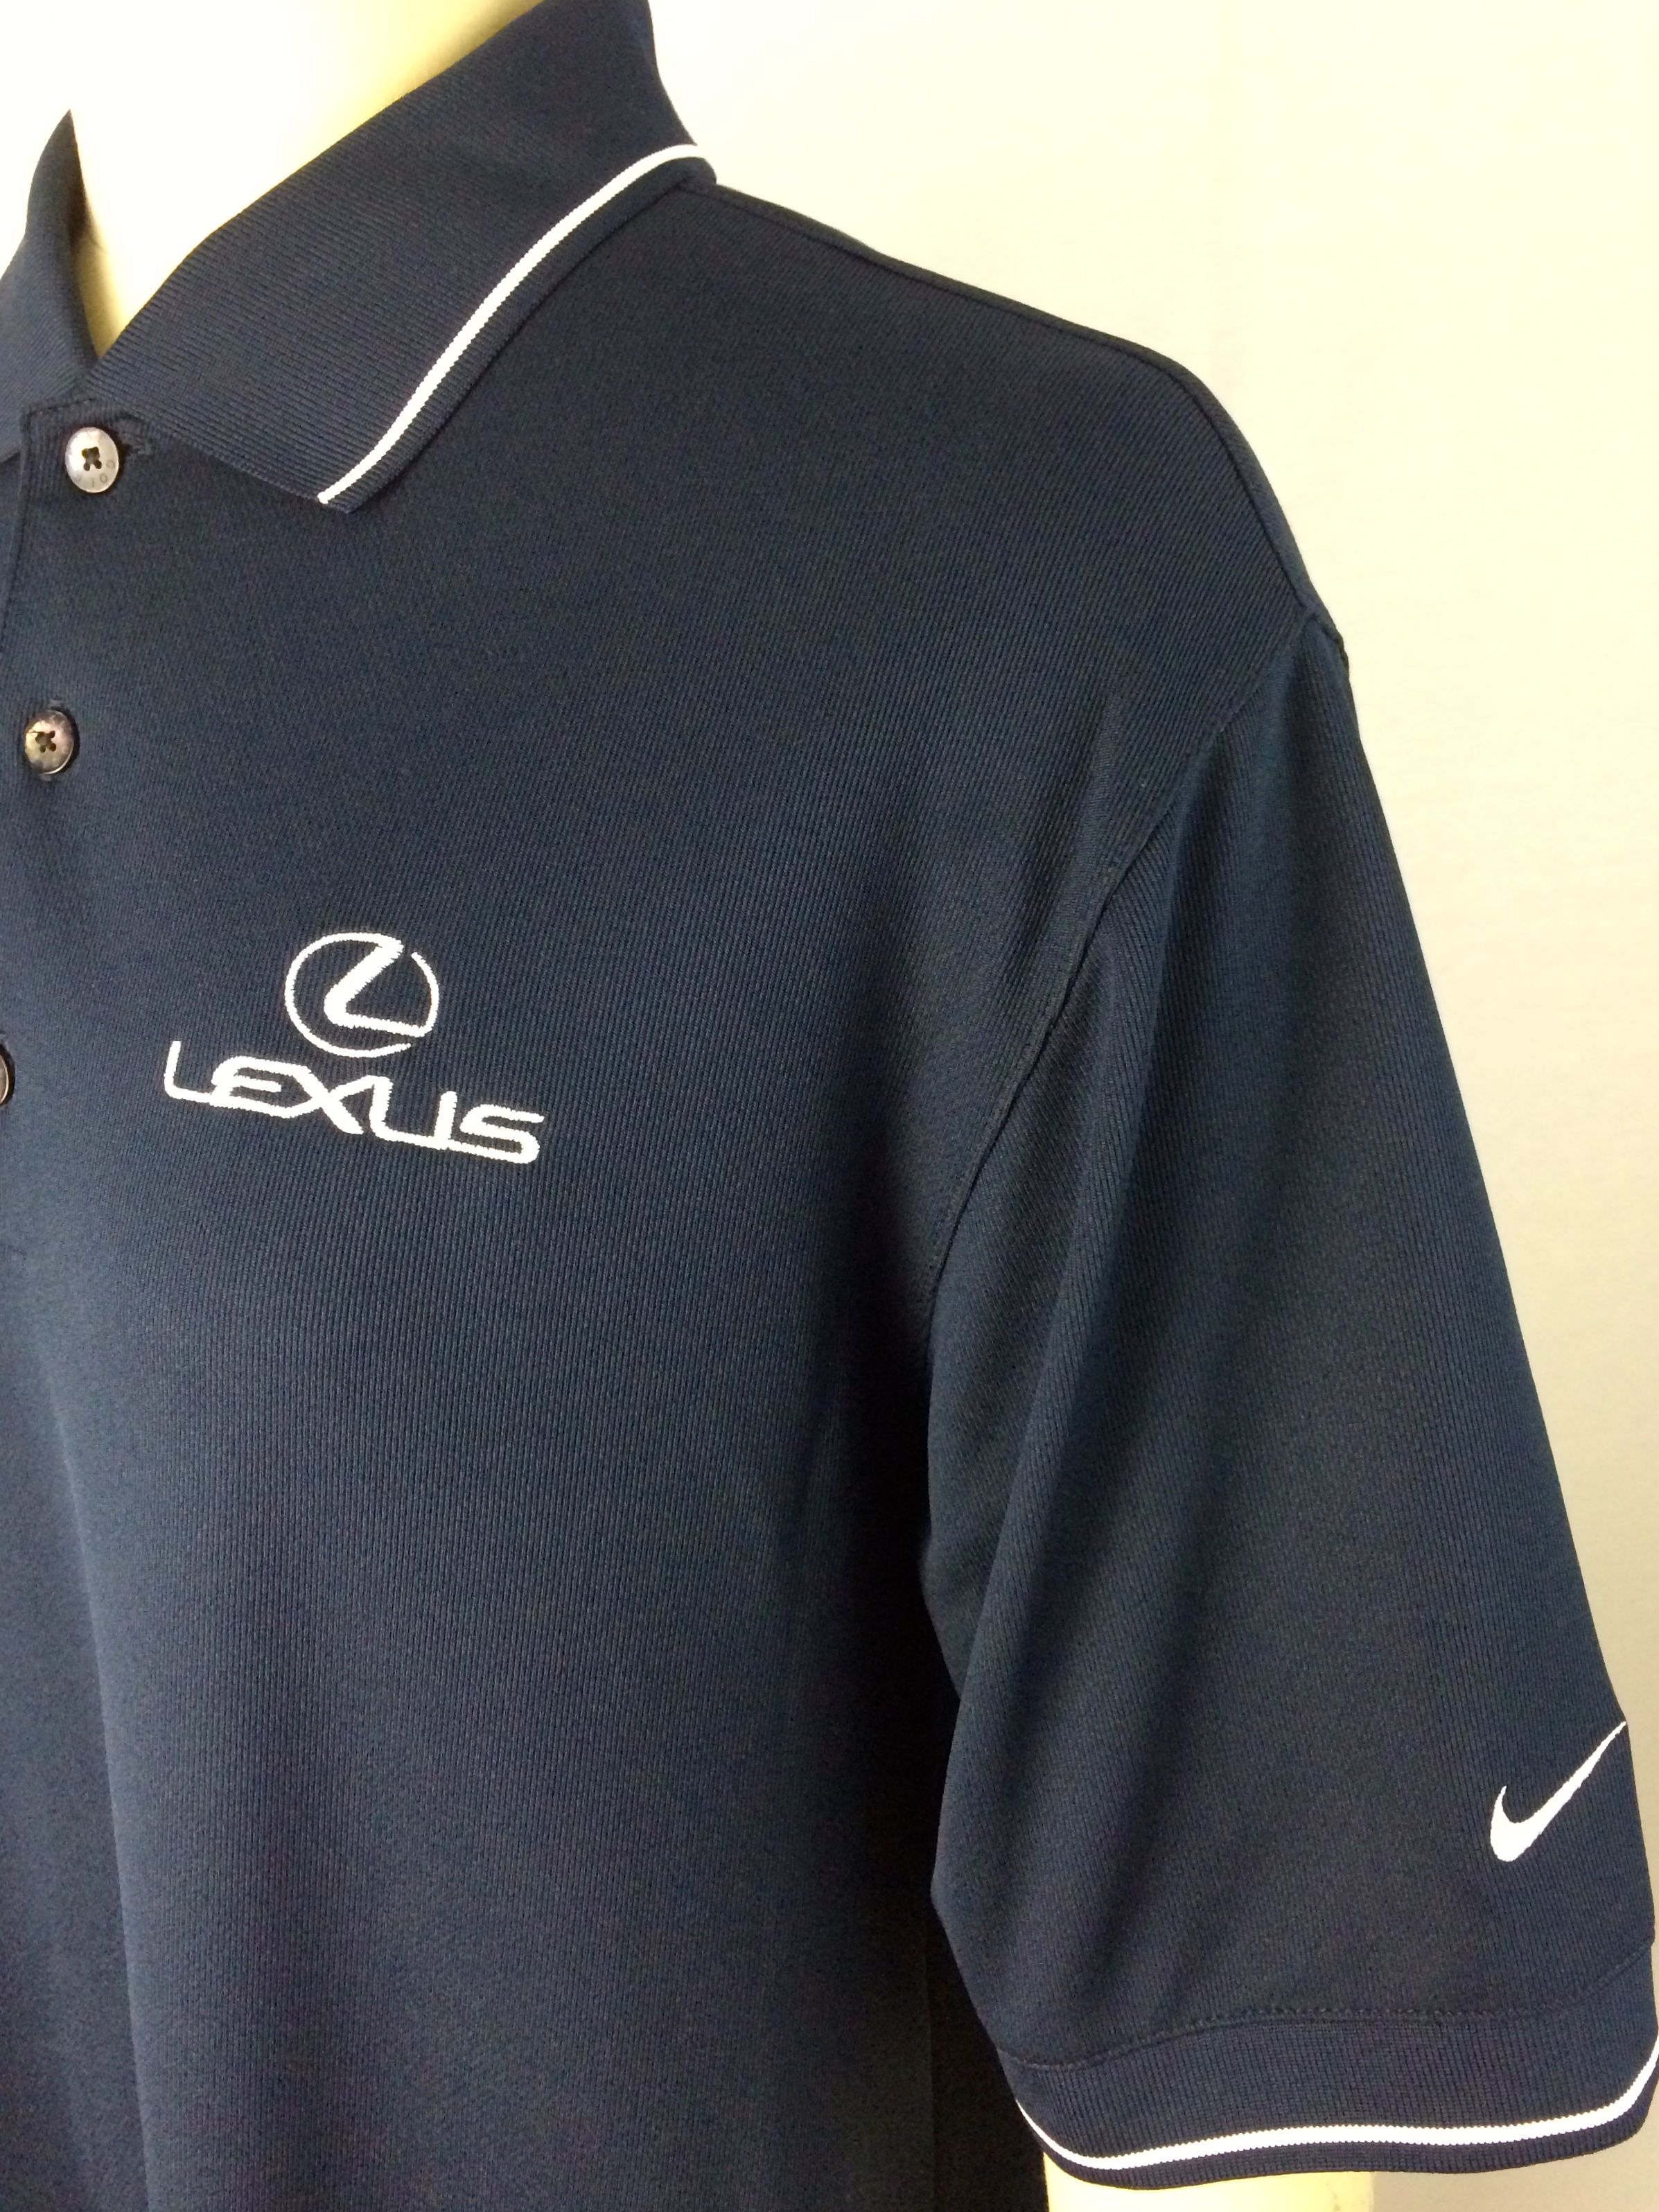 Lead Apparel Works With Lexus On A Custom Embroidered Nike